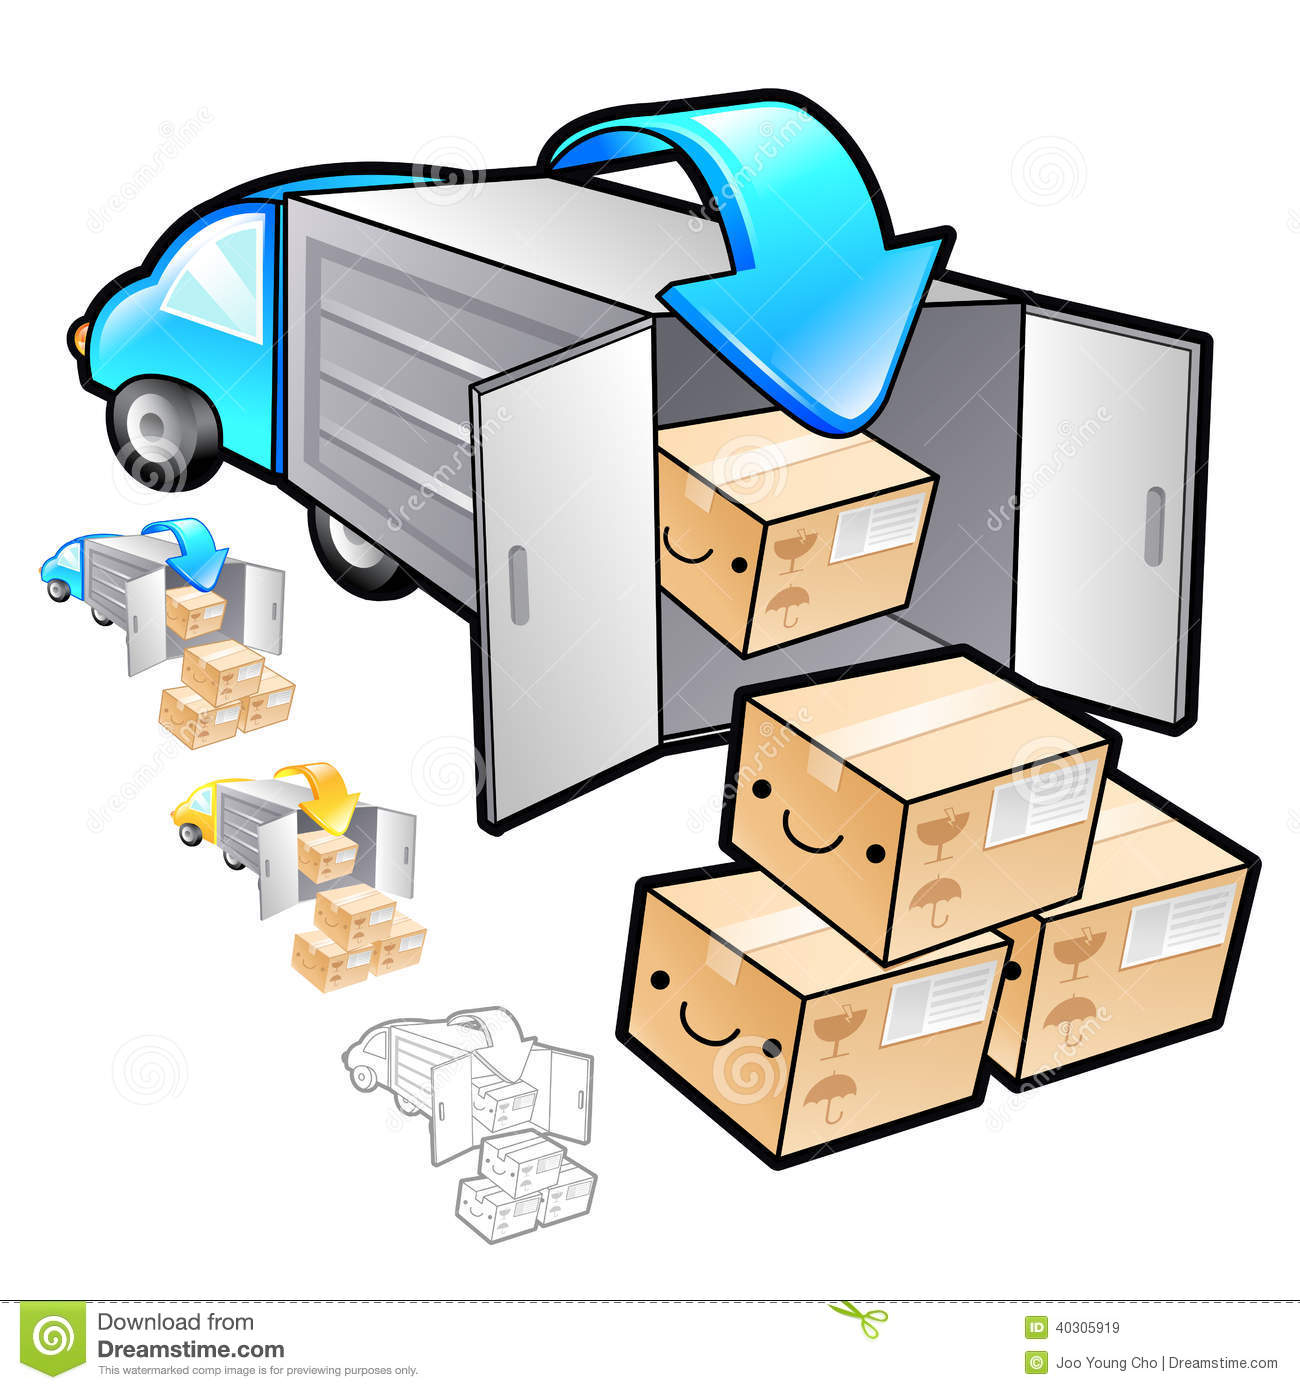 Exports Of Goods Illustration. Product And Distribution ...